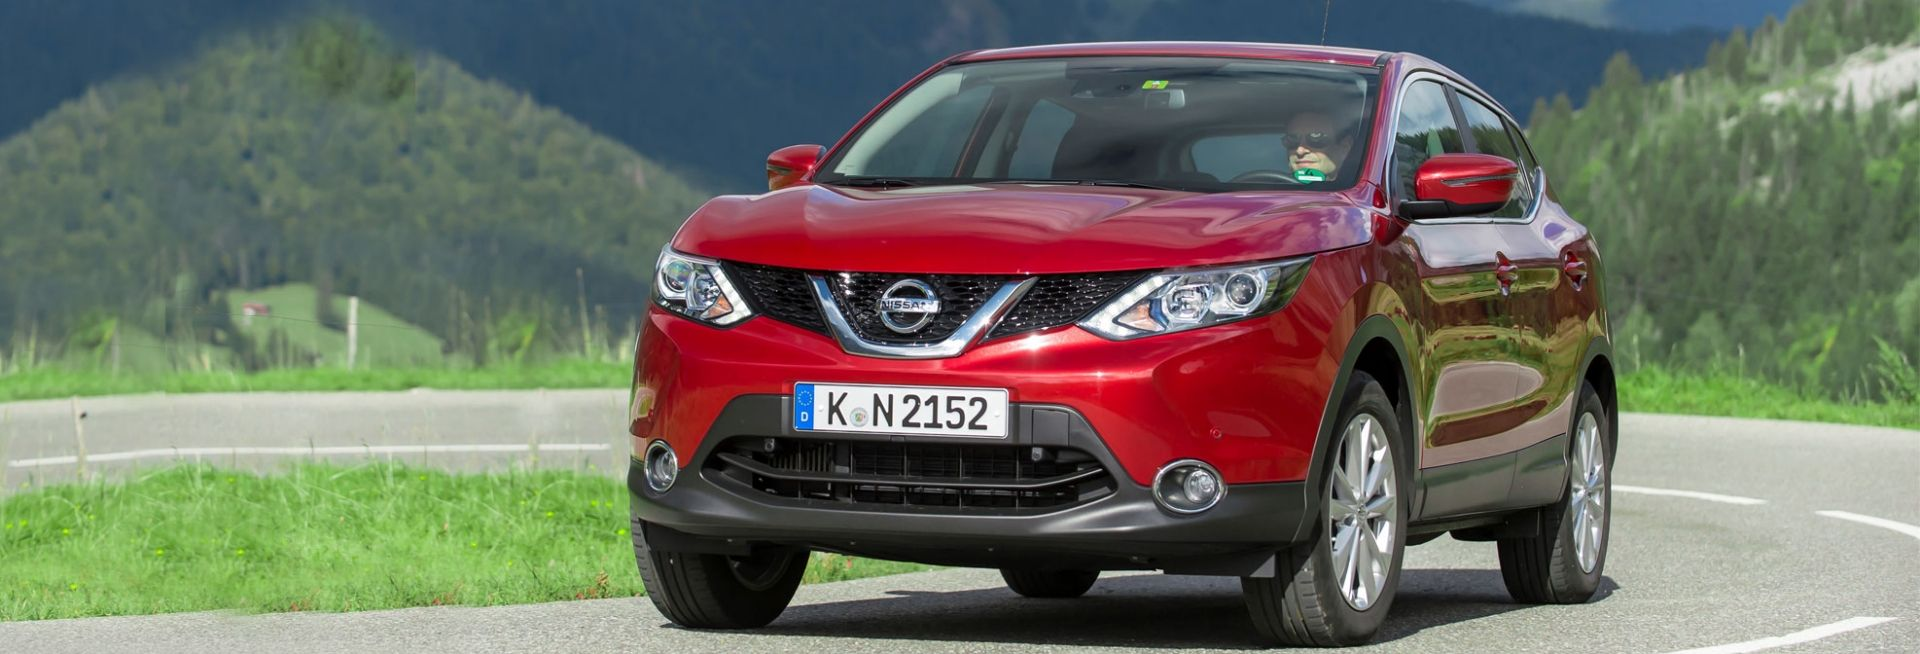 Nissan, Opel, and Suzuki Added to List of Automakers